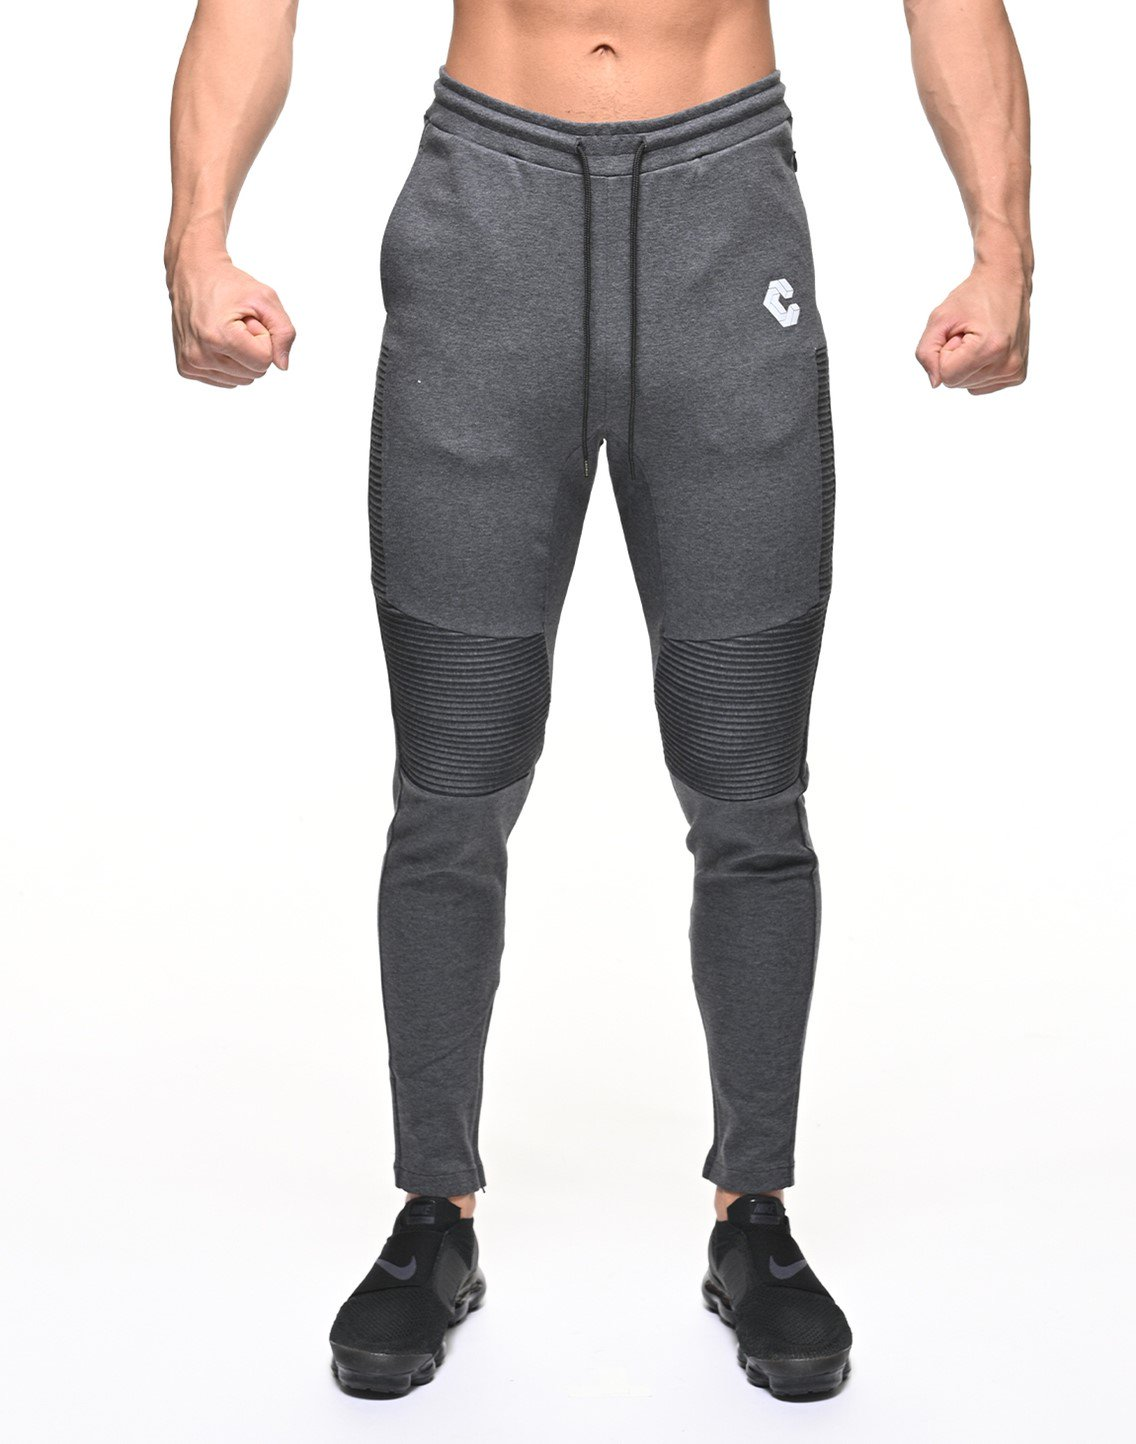 <img class='new_mark_img1' src='https://img.shop-pro.jp/img/new/icons55.gif' style='border:none;display:inline;margin:0px;padding:0px;width:auto;' />CRONOS BIKER PANTS【GRAY】